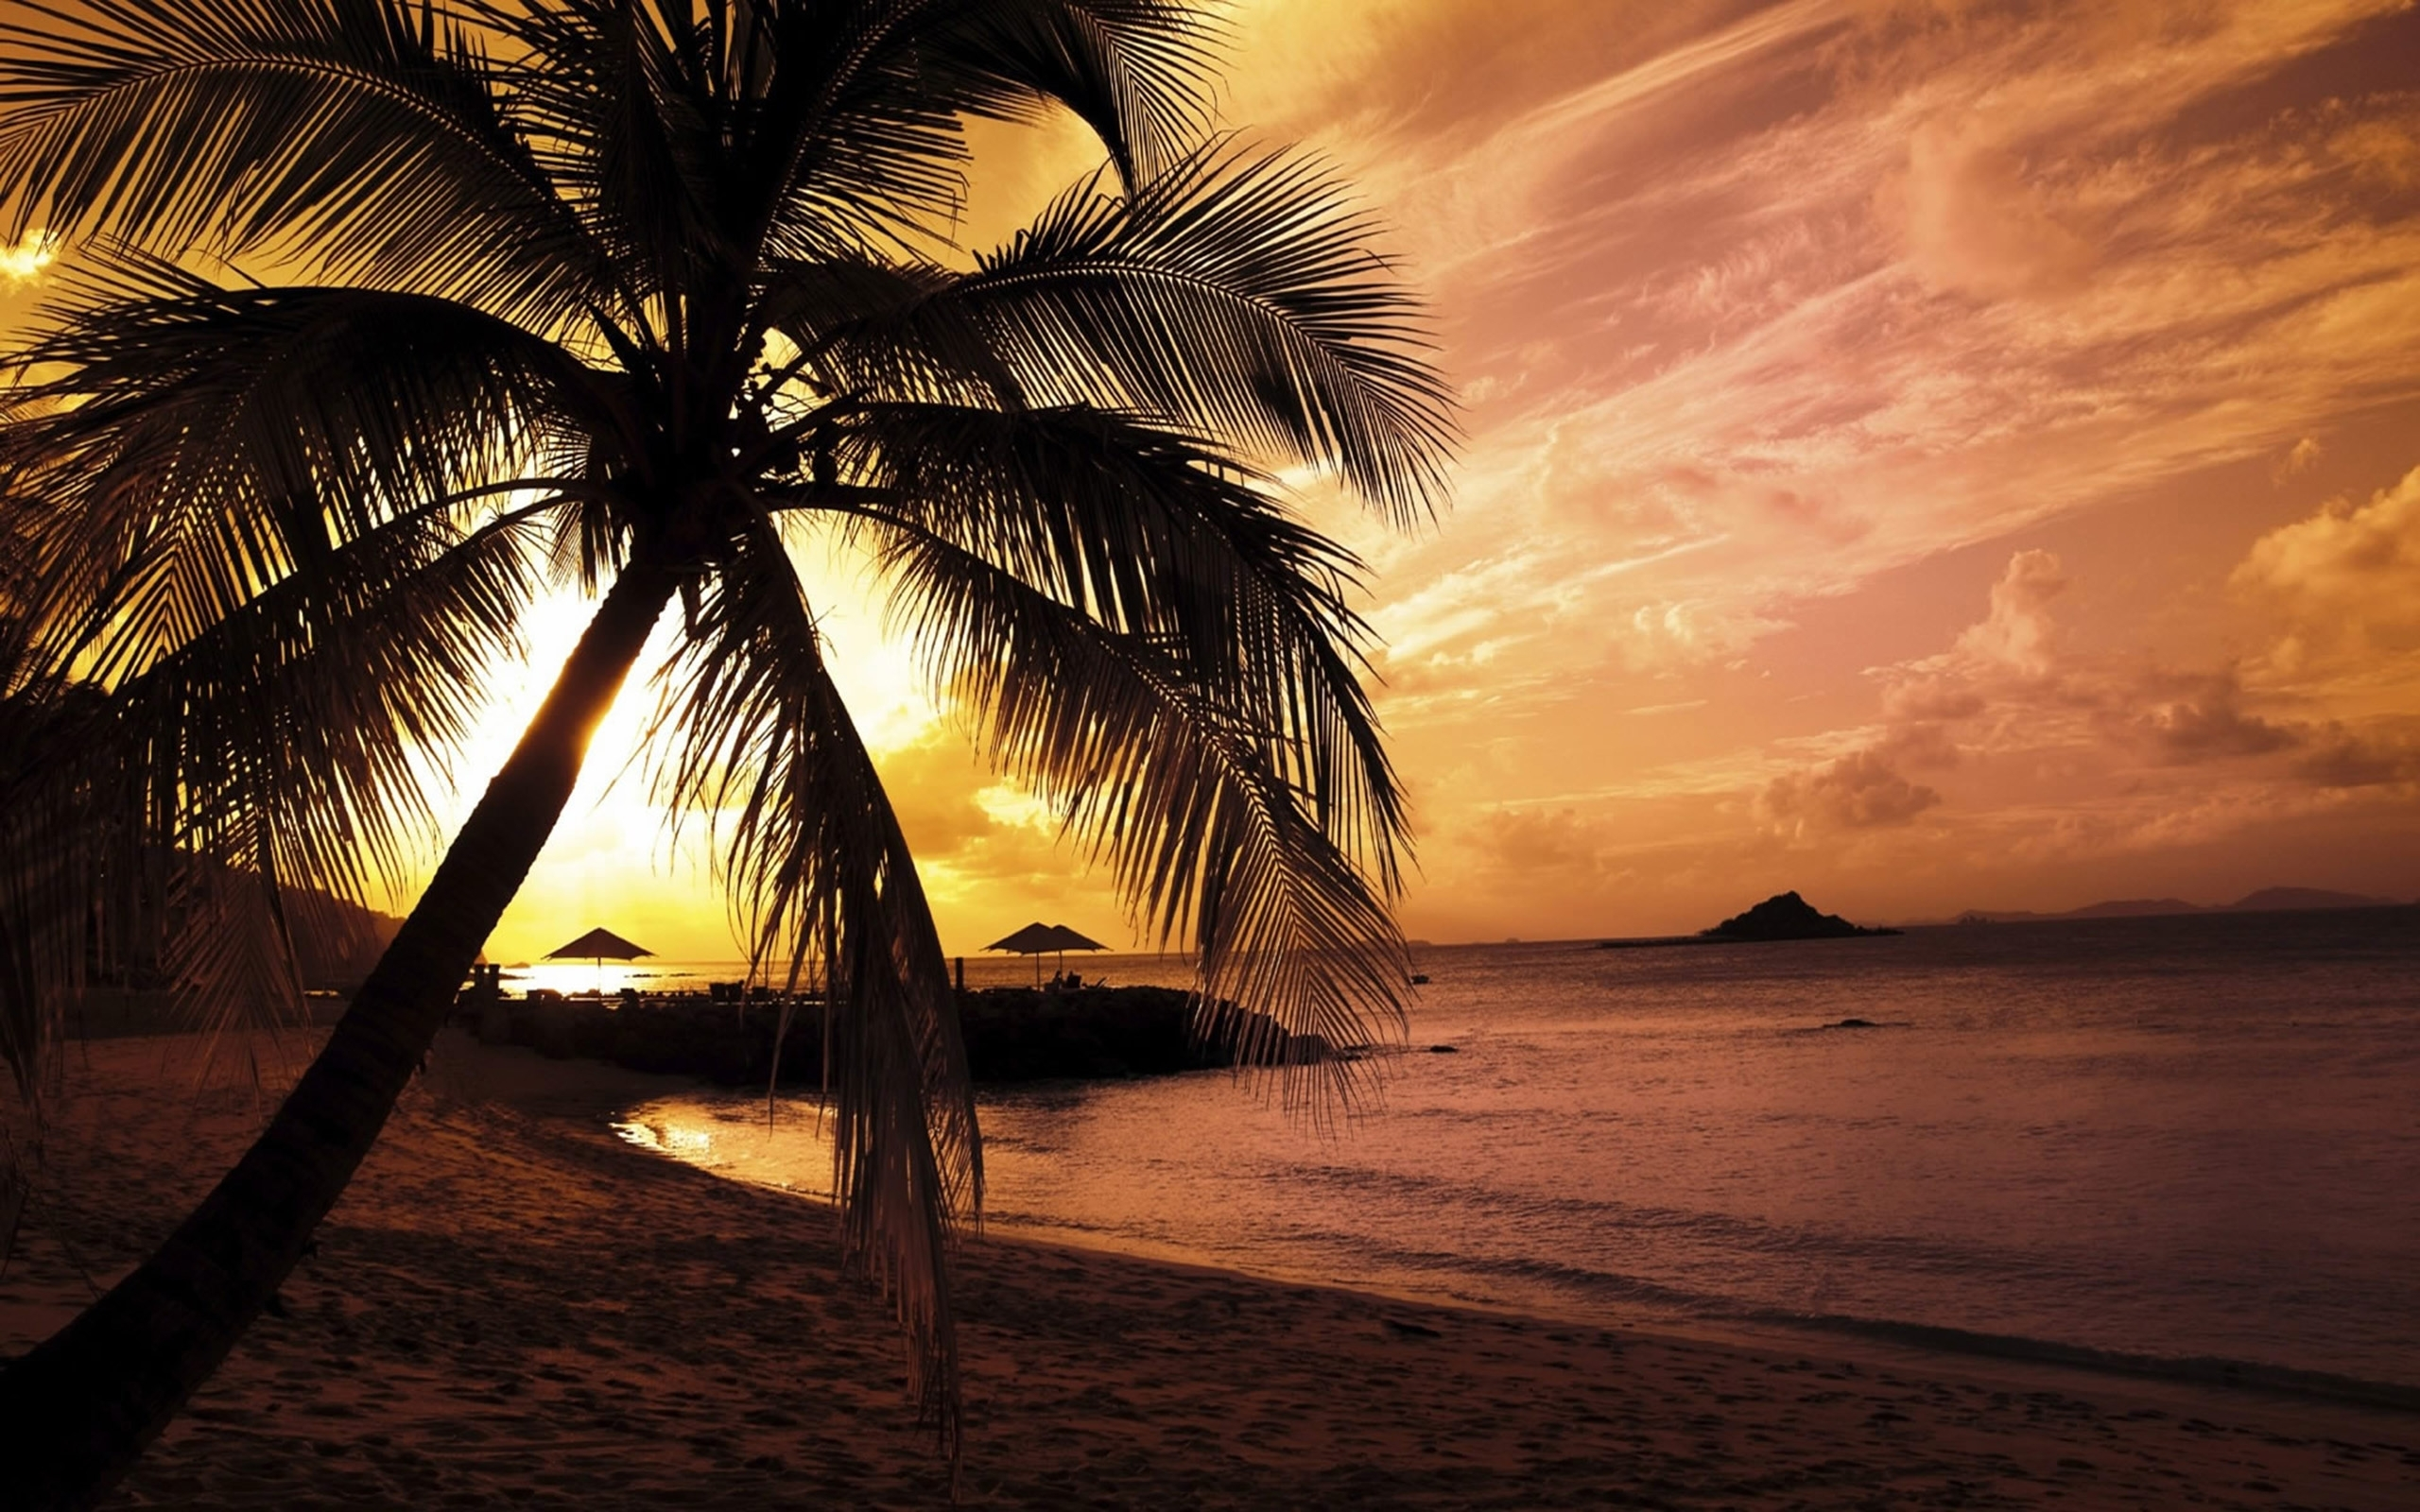 10 Latest Summer Beach Sunset Wallpaper FULL HD 1920×1080 For PC Desktop